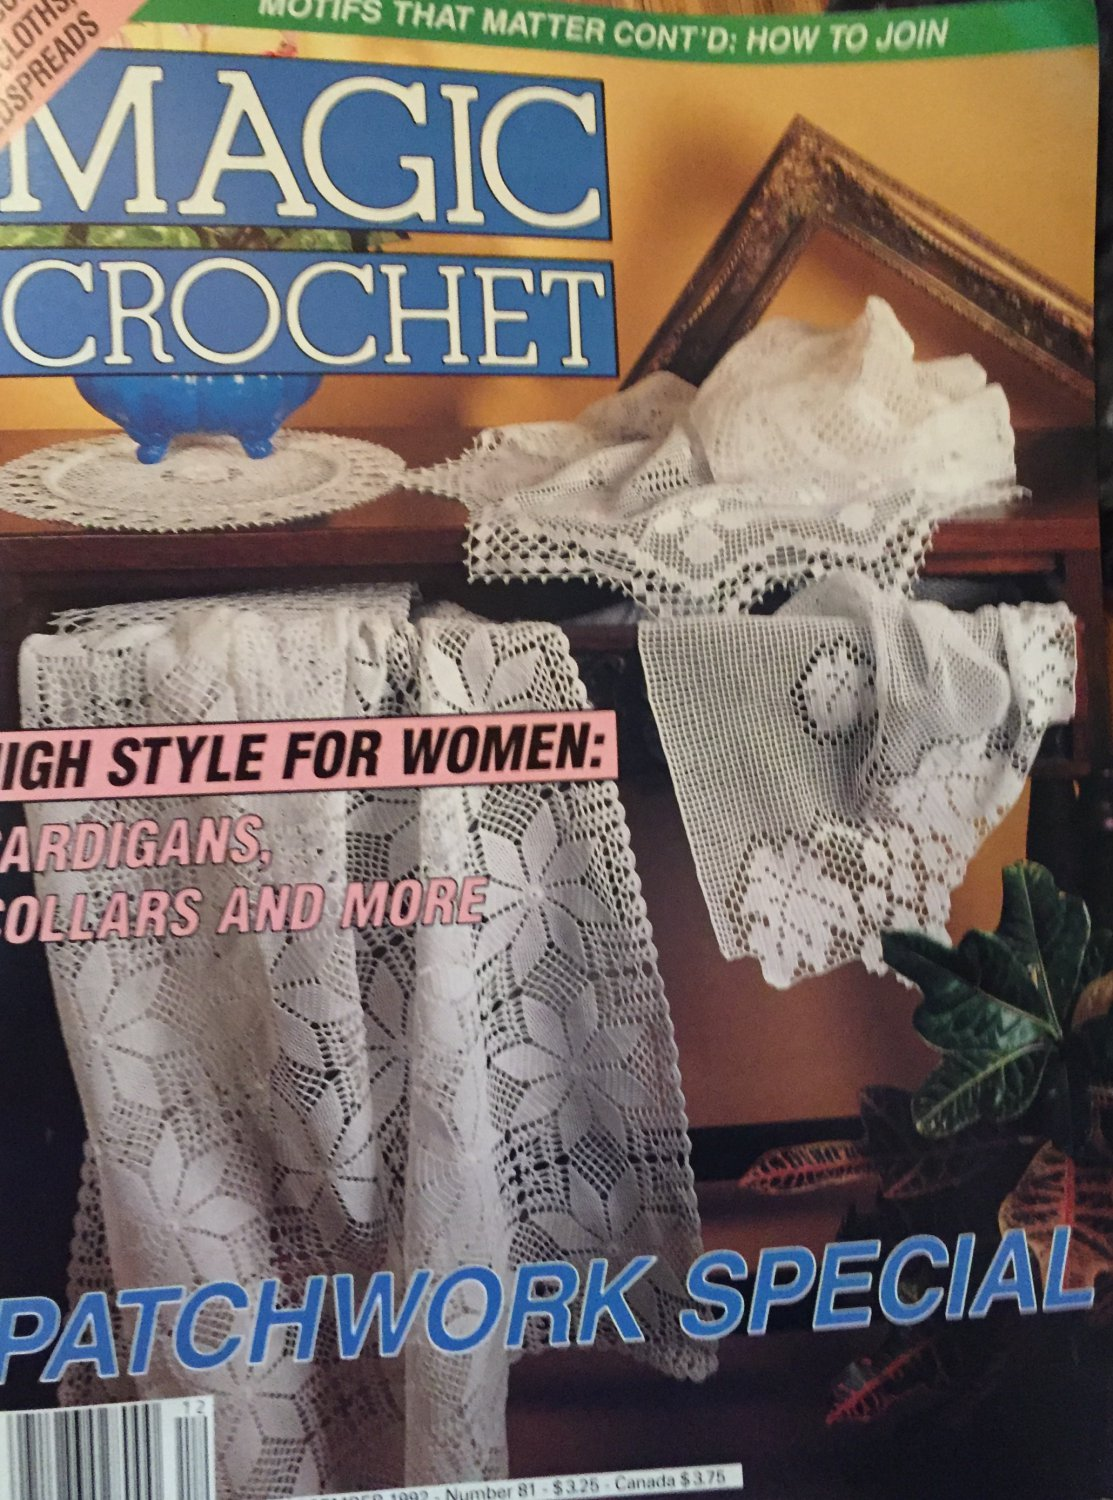 Magic Crochet Pattern Magazine Number 81 December 1992 Doilies, tablecloths, child's sweater